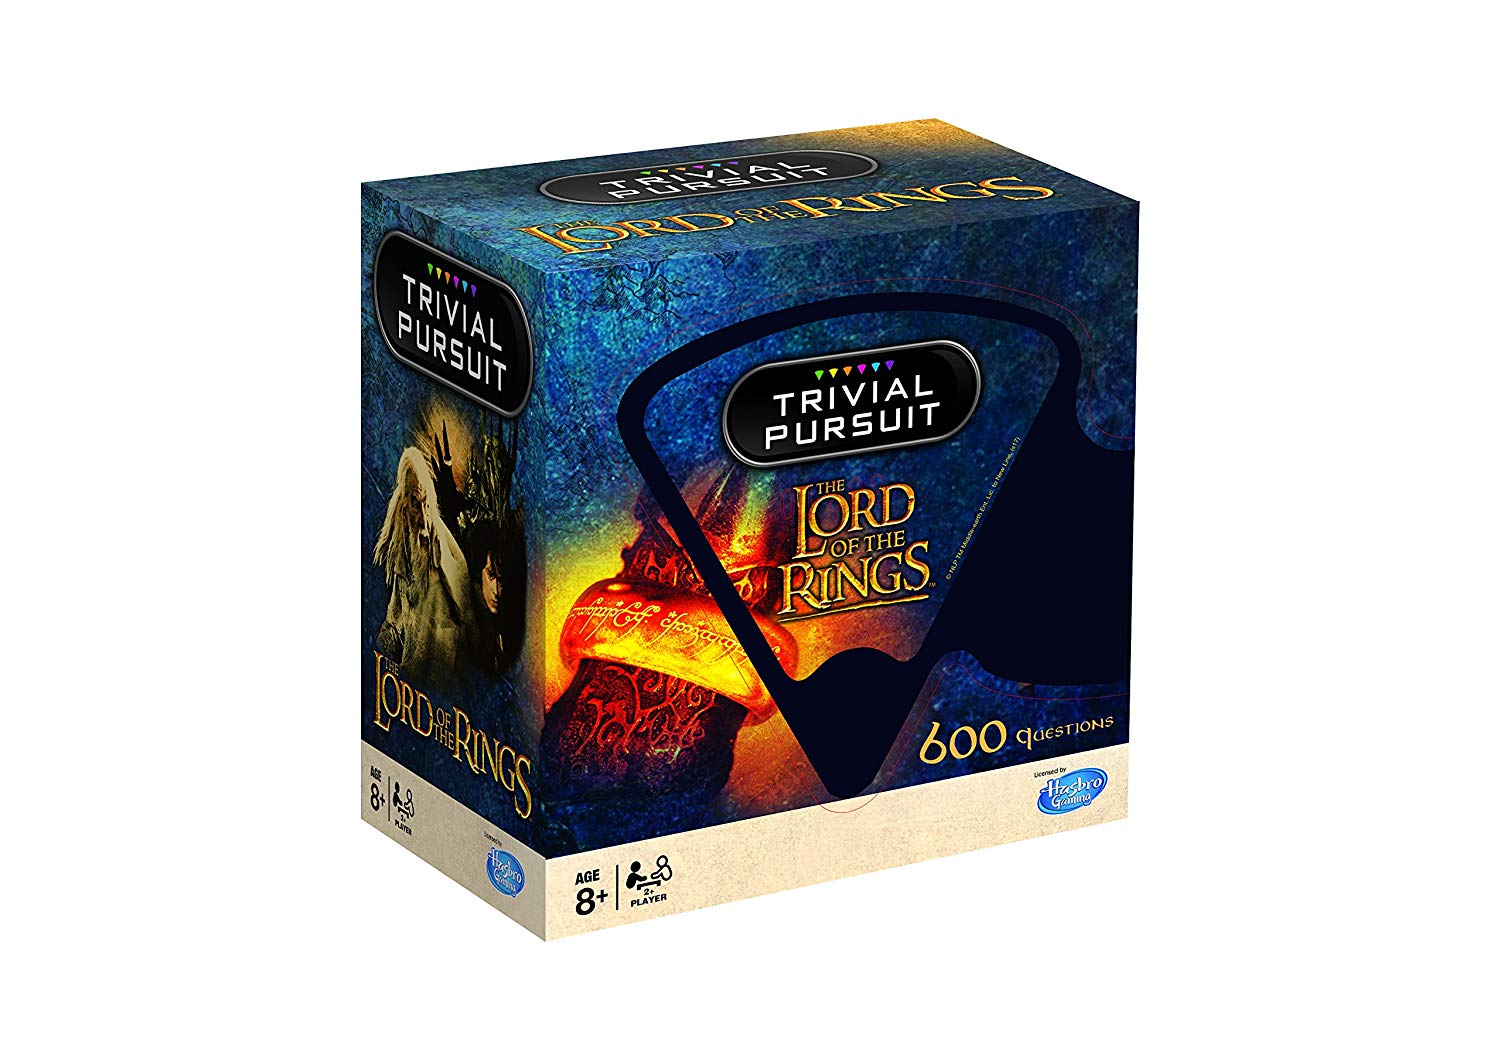 'Lord of the Rings' trivial pursuit is exciting fans this Christmas. Credit: Amazon